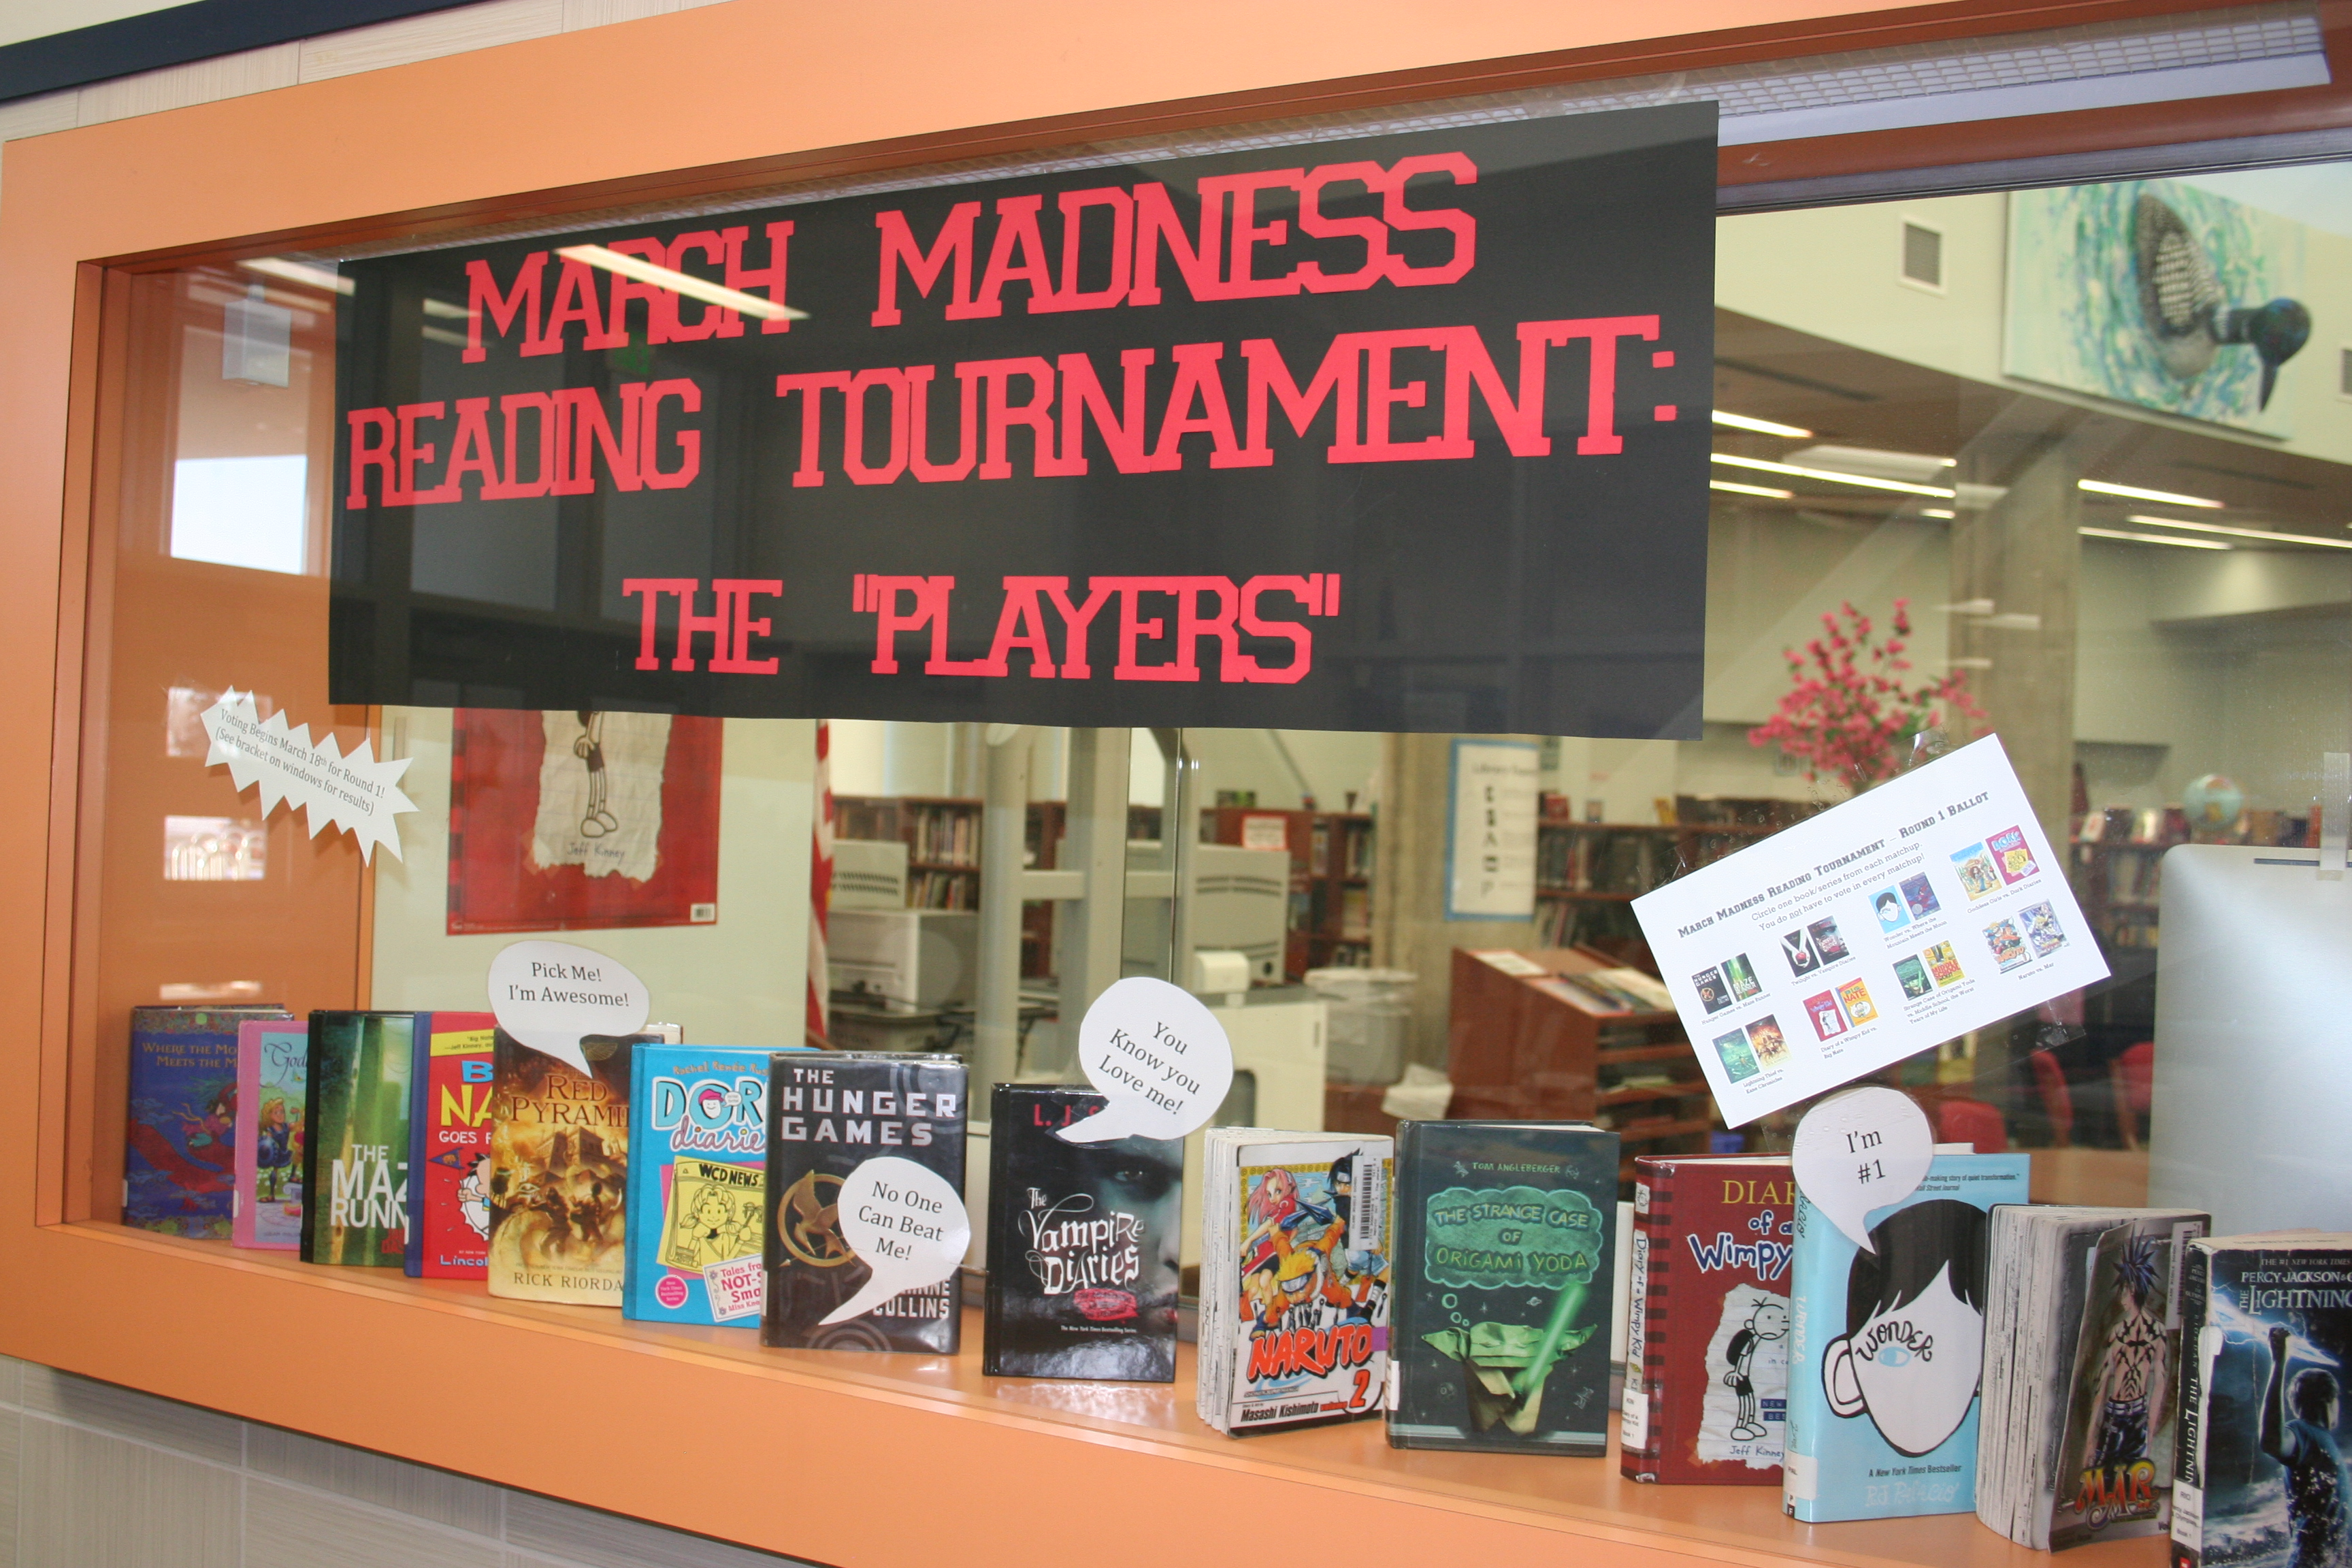 March Madness Reading Tournament on March Madness Library Bulletin Board